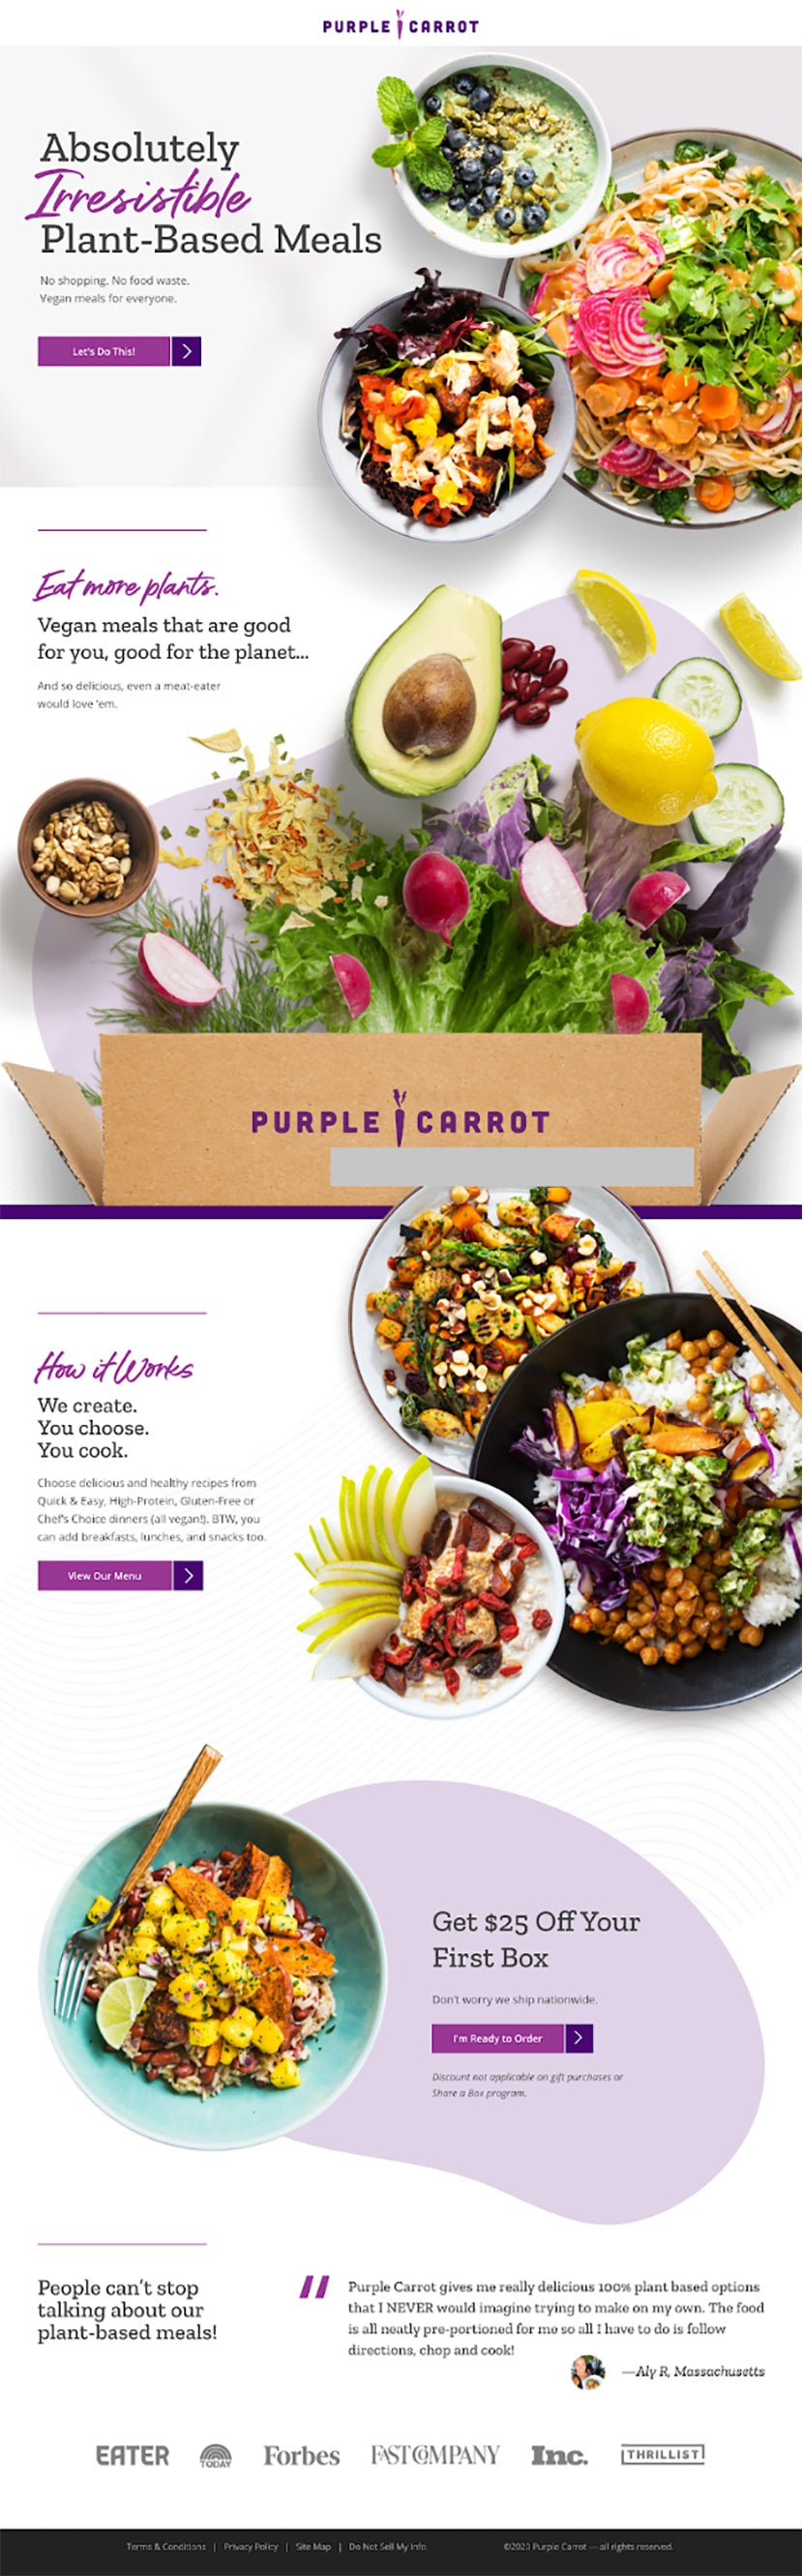 Purple Carrot landing page